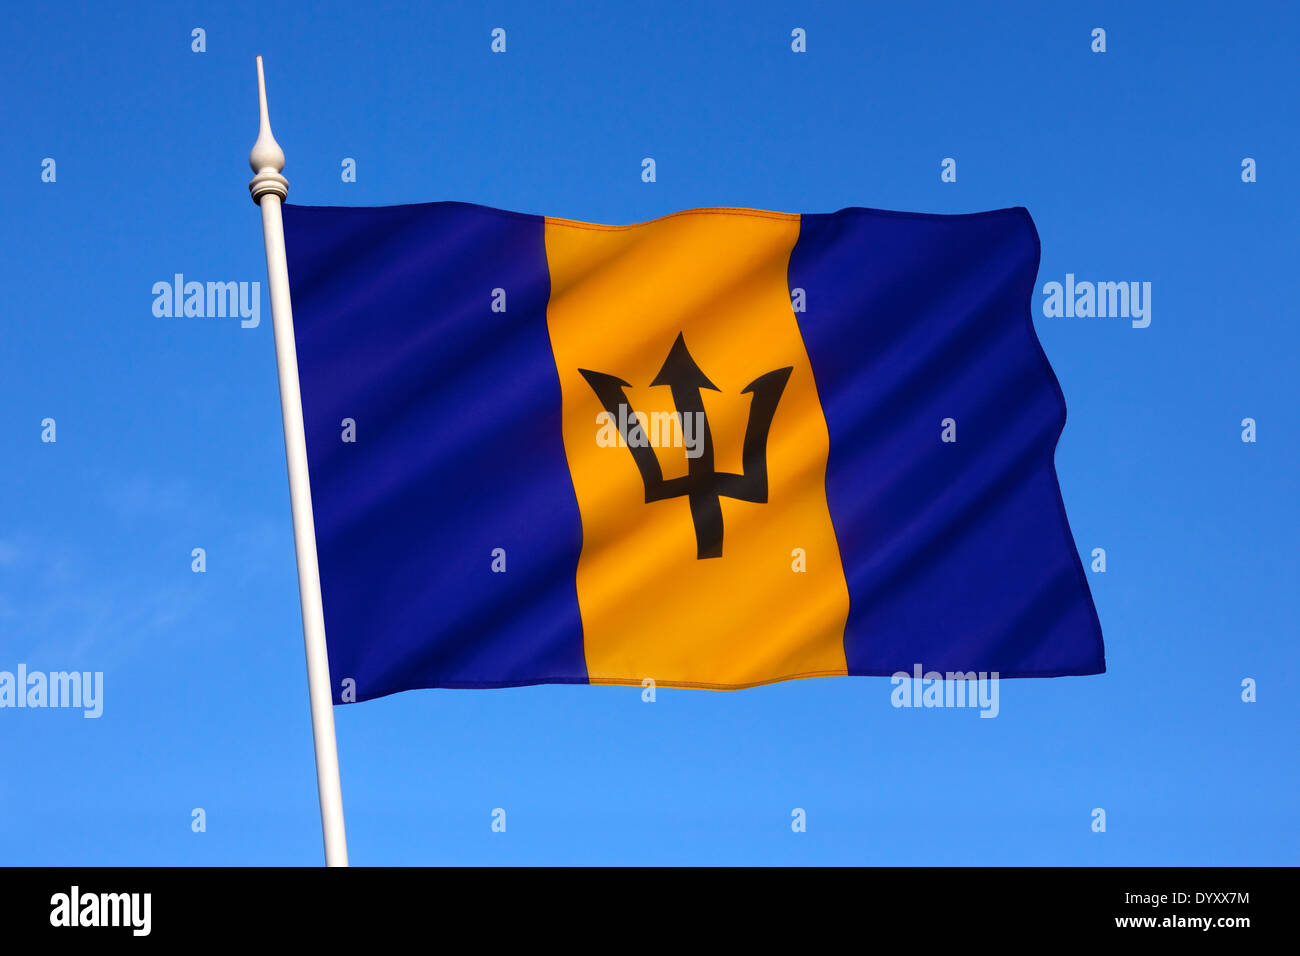 The national flag of Barbados - Stock Image